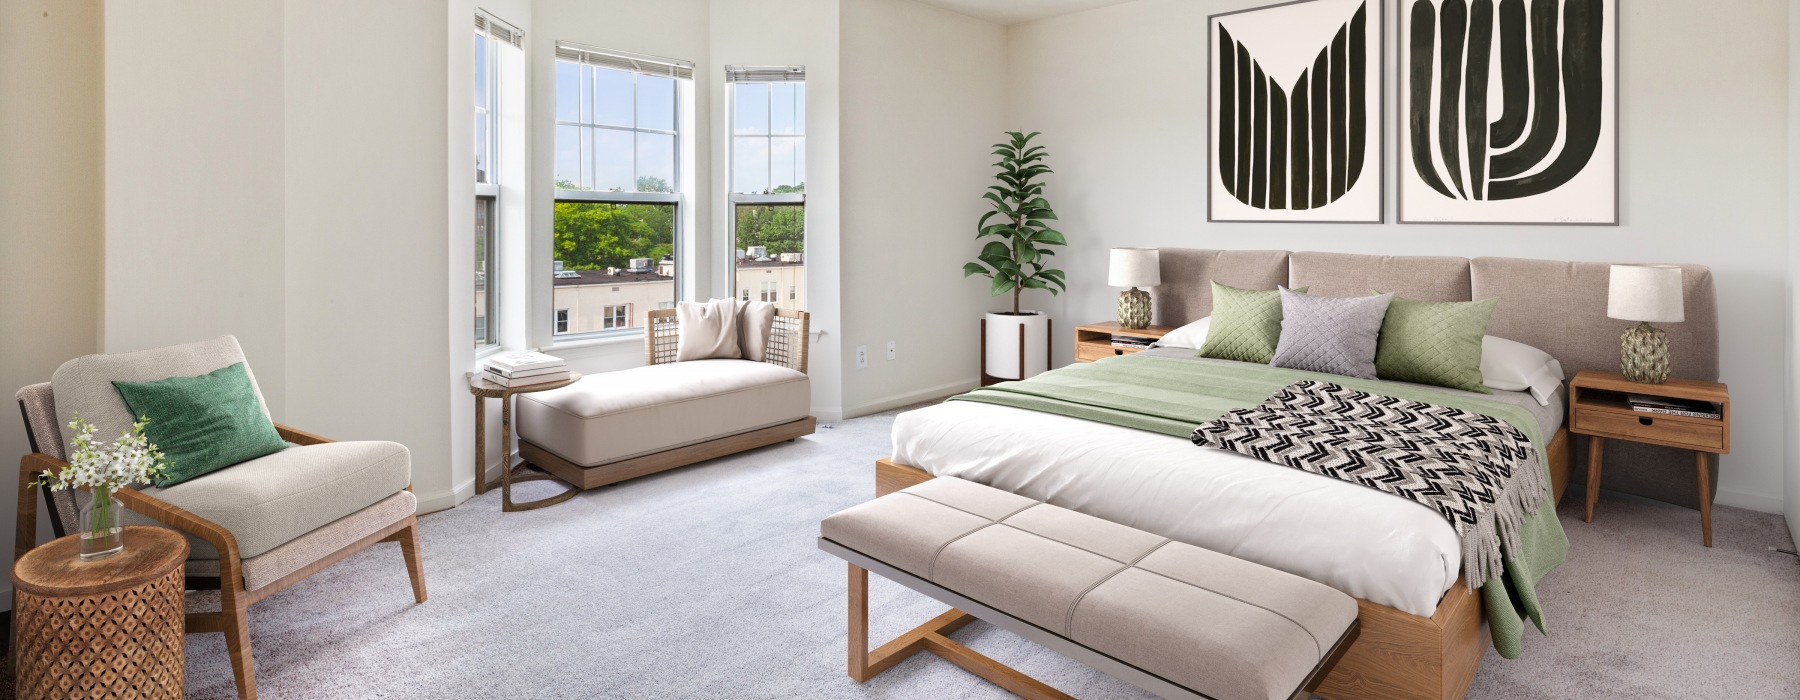 large bedroom with oversized windows, queen bed and seating area